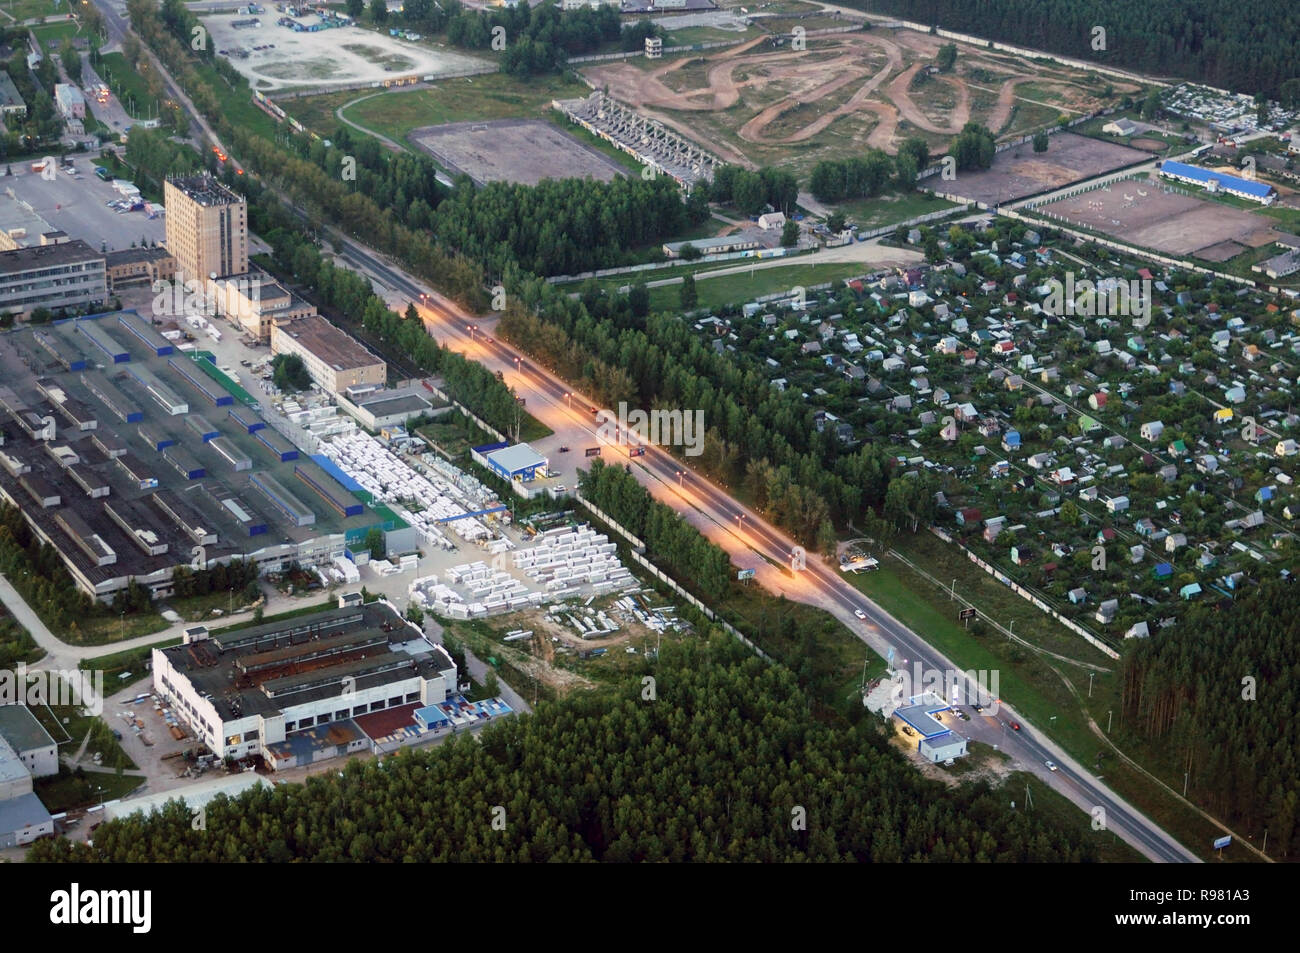 Kovrov, Russia. 11 August 2013. Kovrov town from the air in the evening. Sports complex Motodrom, children's and youth equestrian sports school, colle - Stock Image